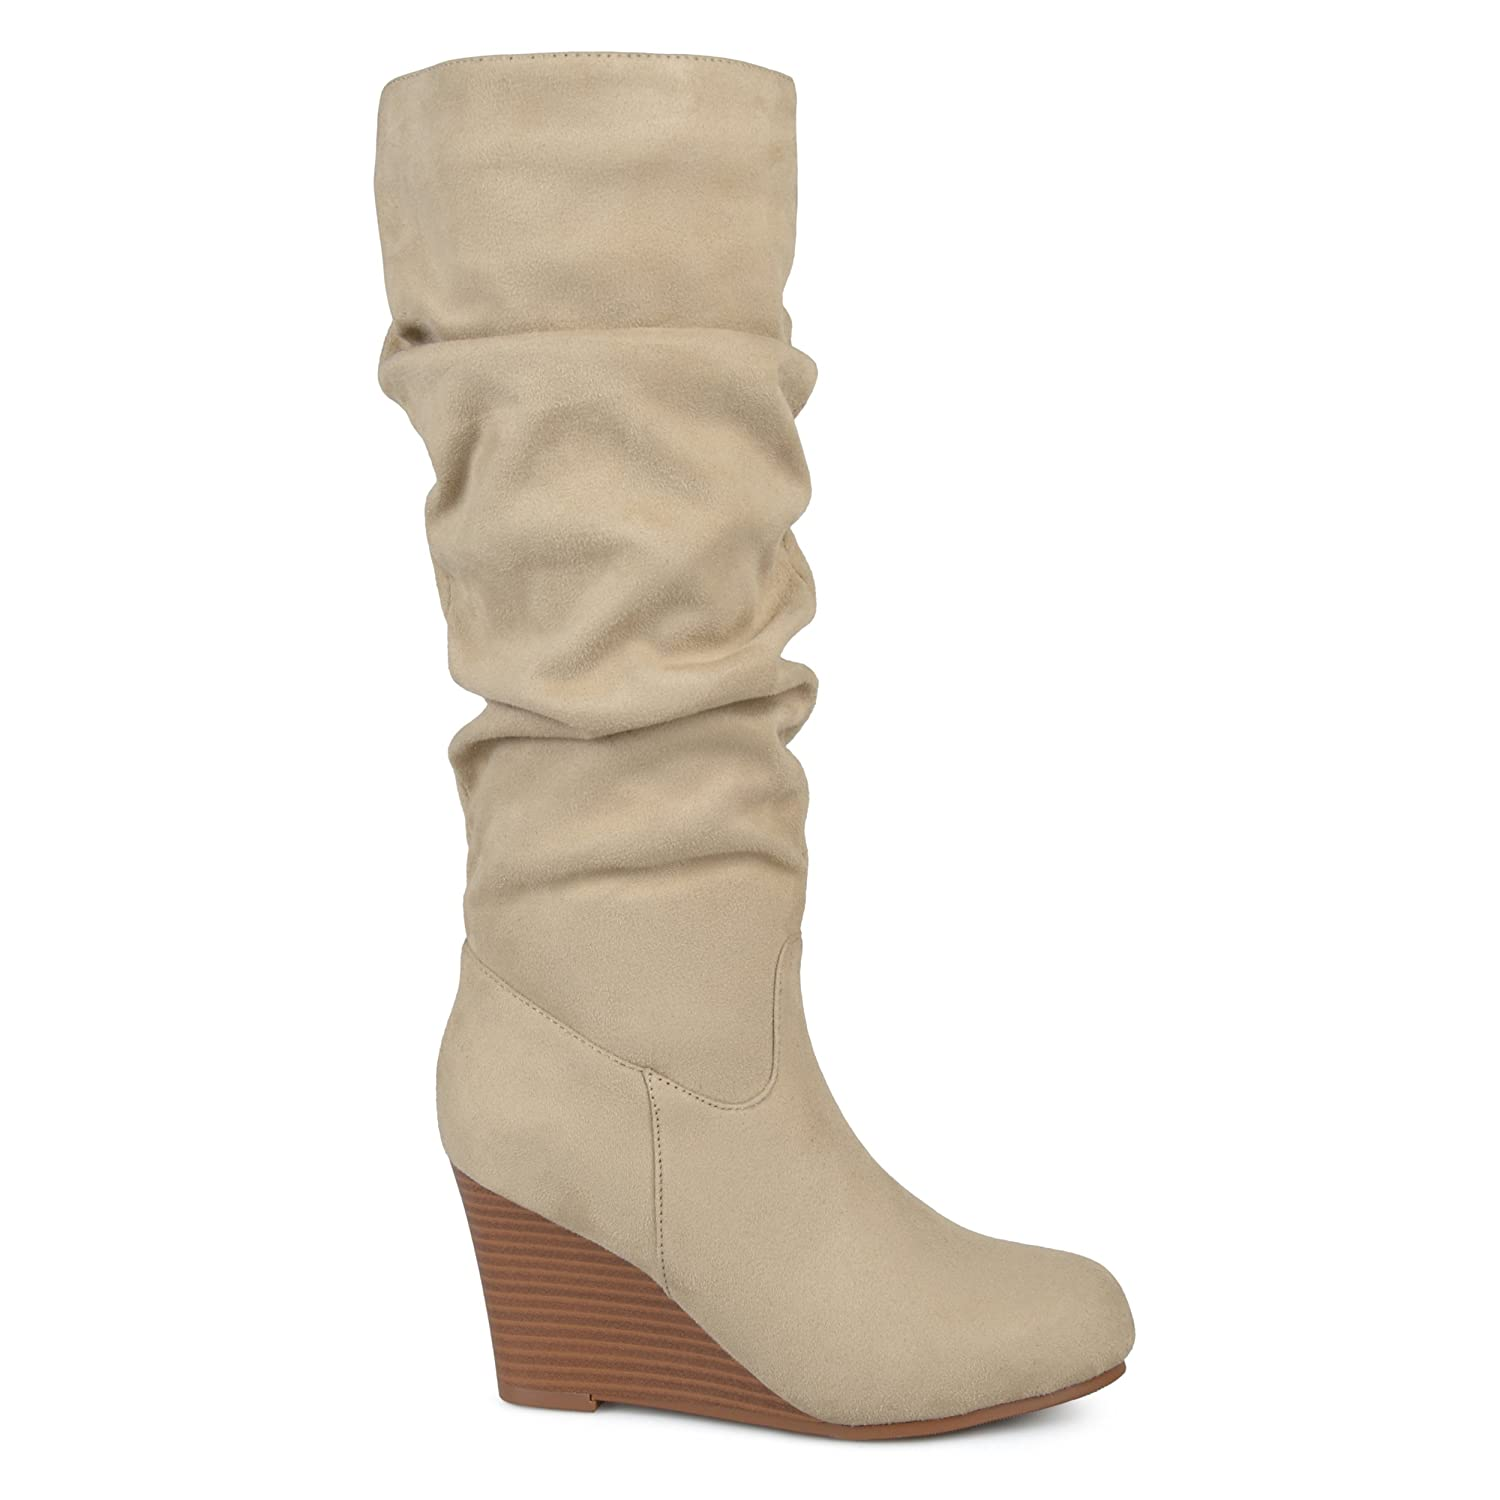 ebe4a67e01b02 Womens Regular and Wide Calf Slouchy Faux Suede Mid-Calf Wedge Boots Stone,  12 Wide Calf US | Mid-Calf